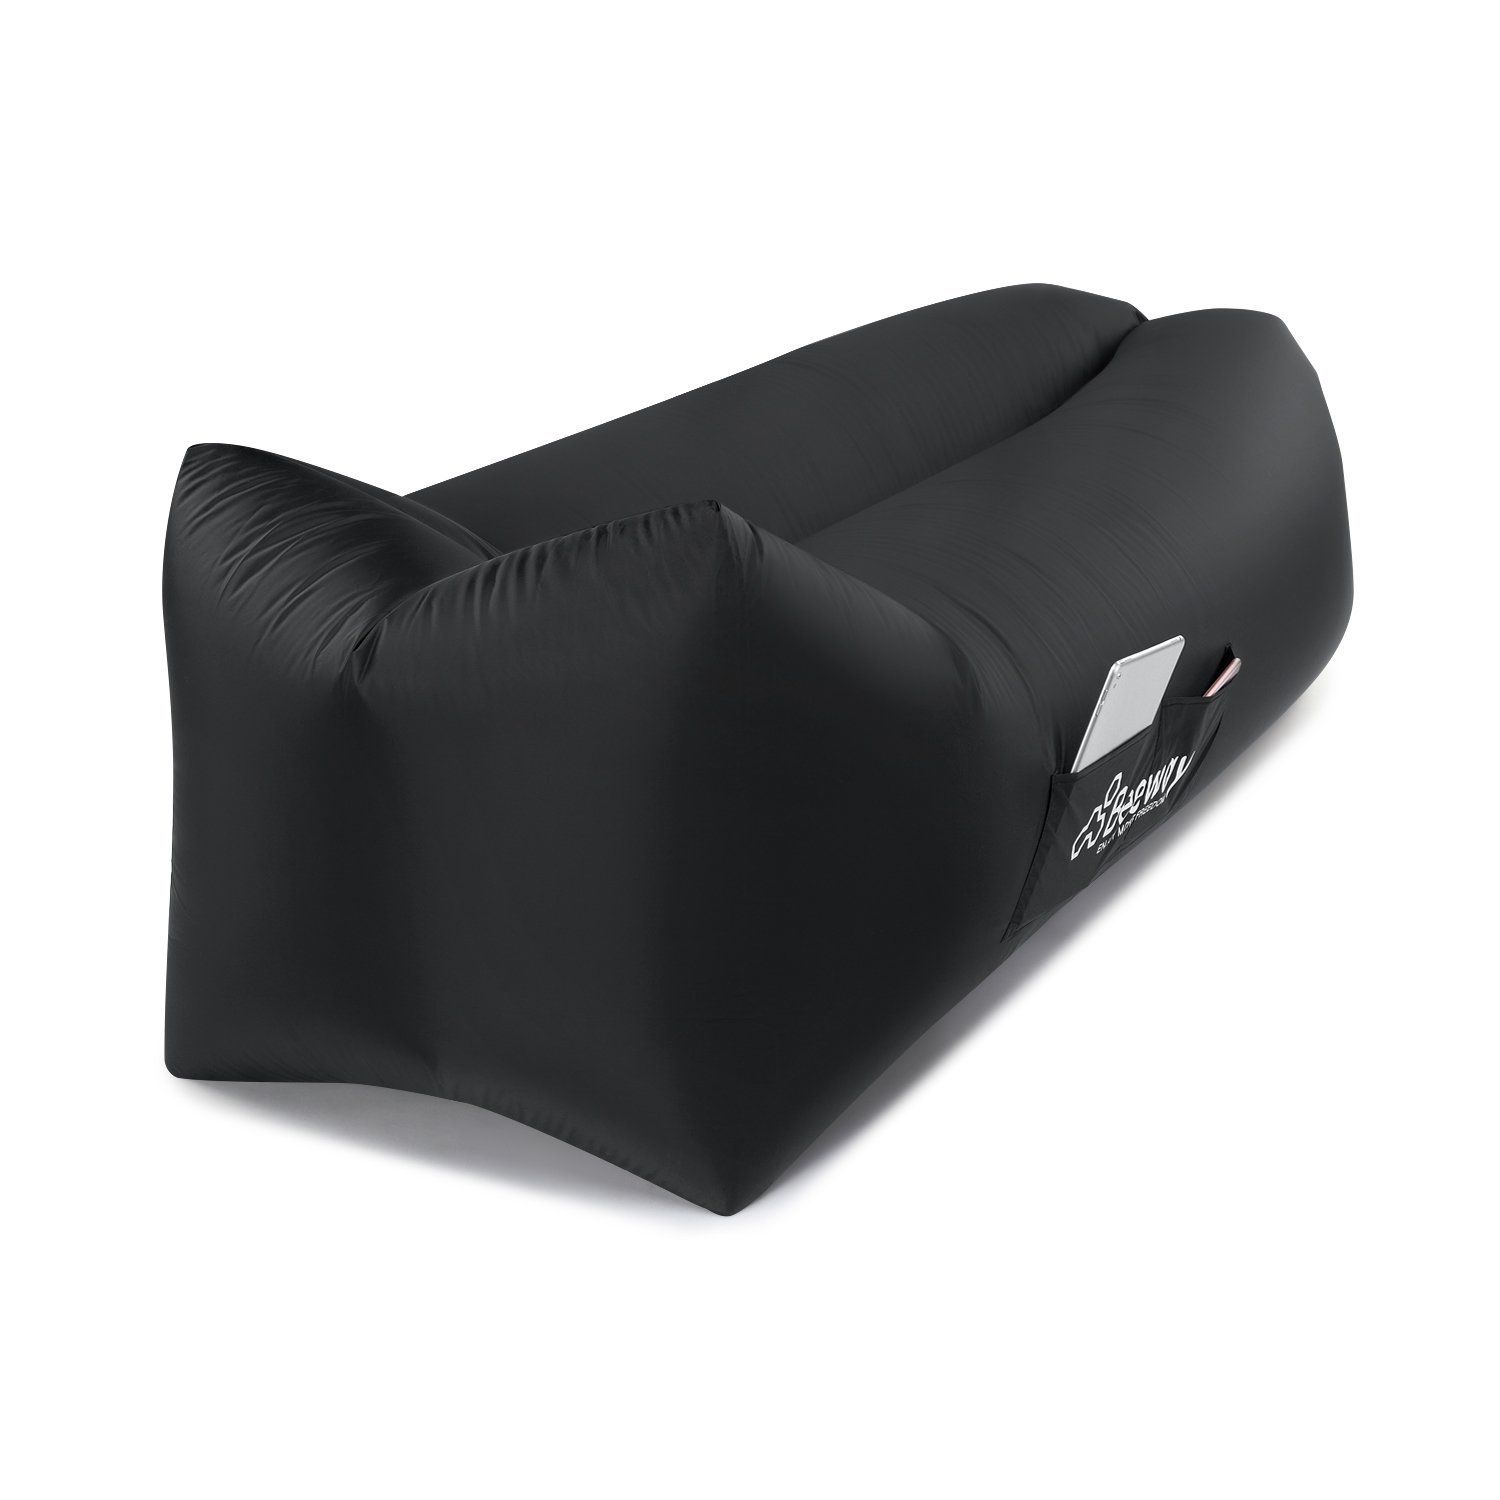 Beeway Inflatable Lounger 2Nd Generation  Headrest Comfort Design, One